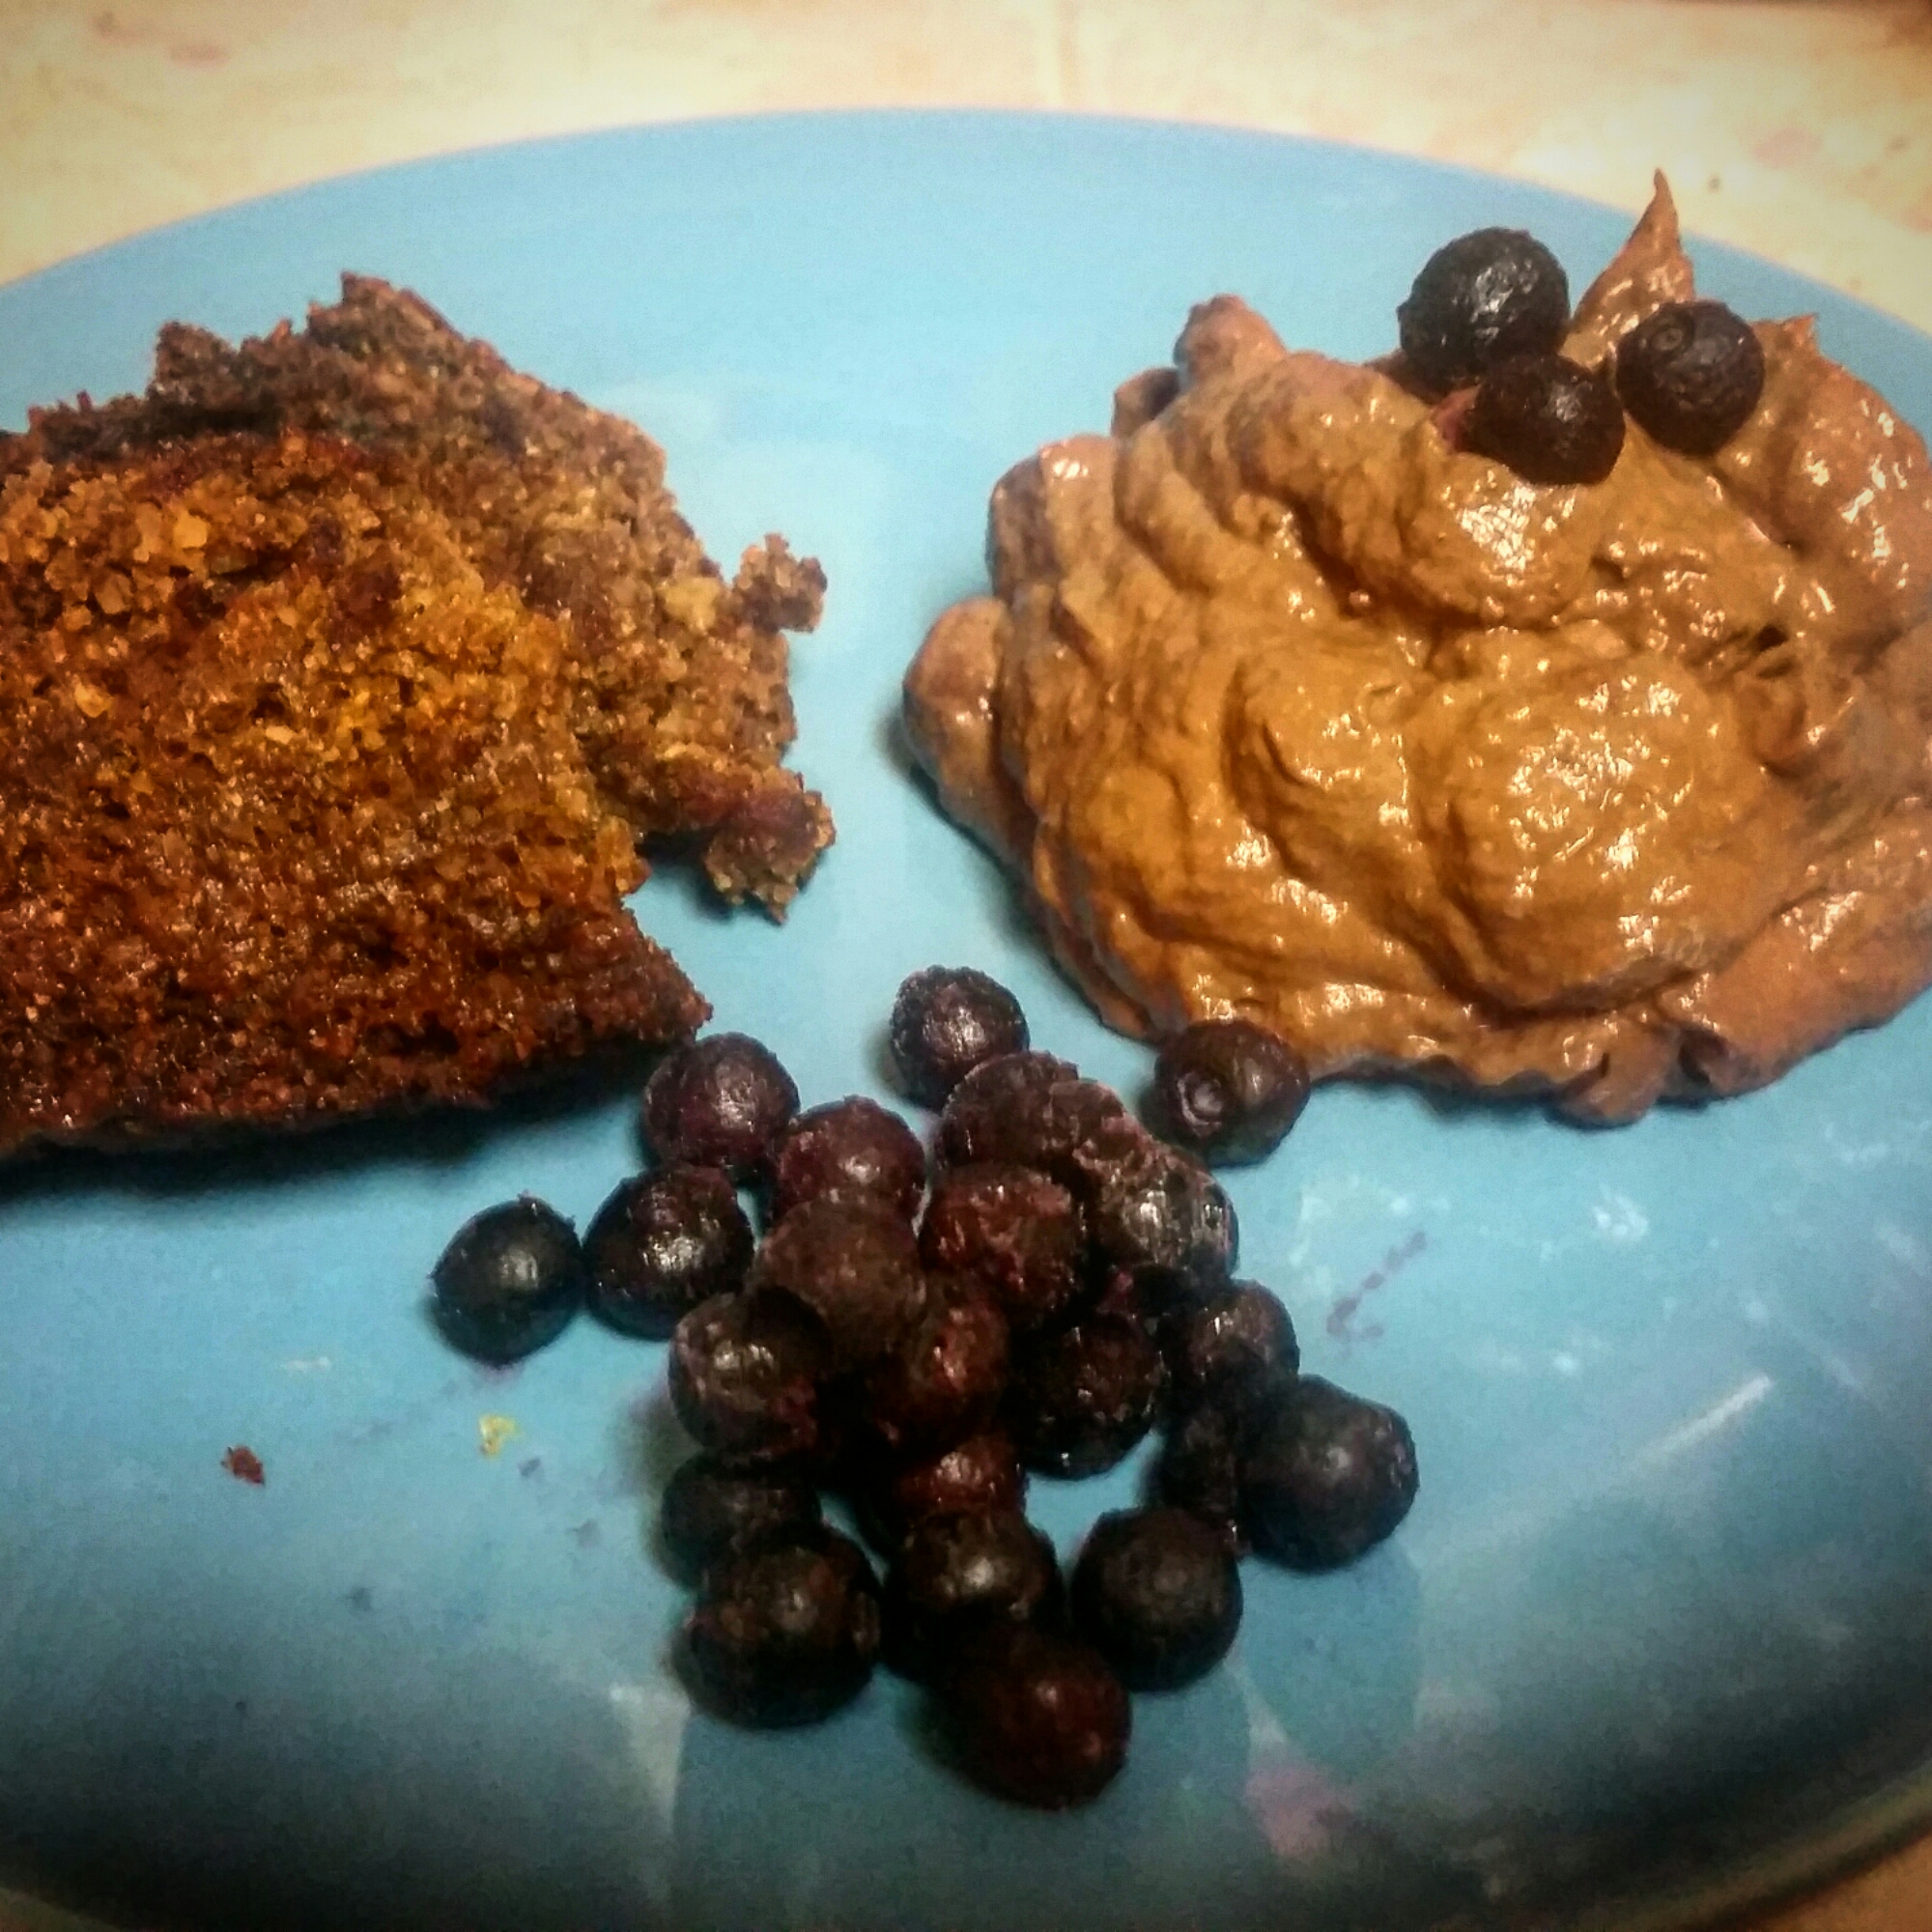 - Gingerbread Loaf with Chocolate Avocado Pudding & Blueberries